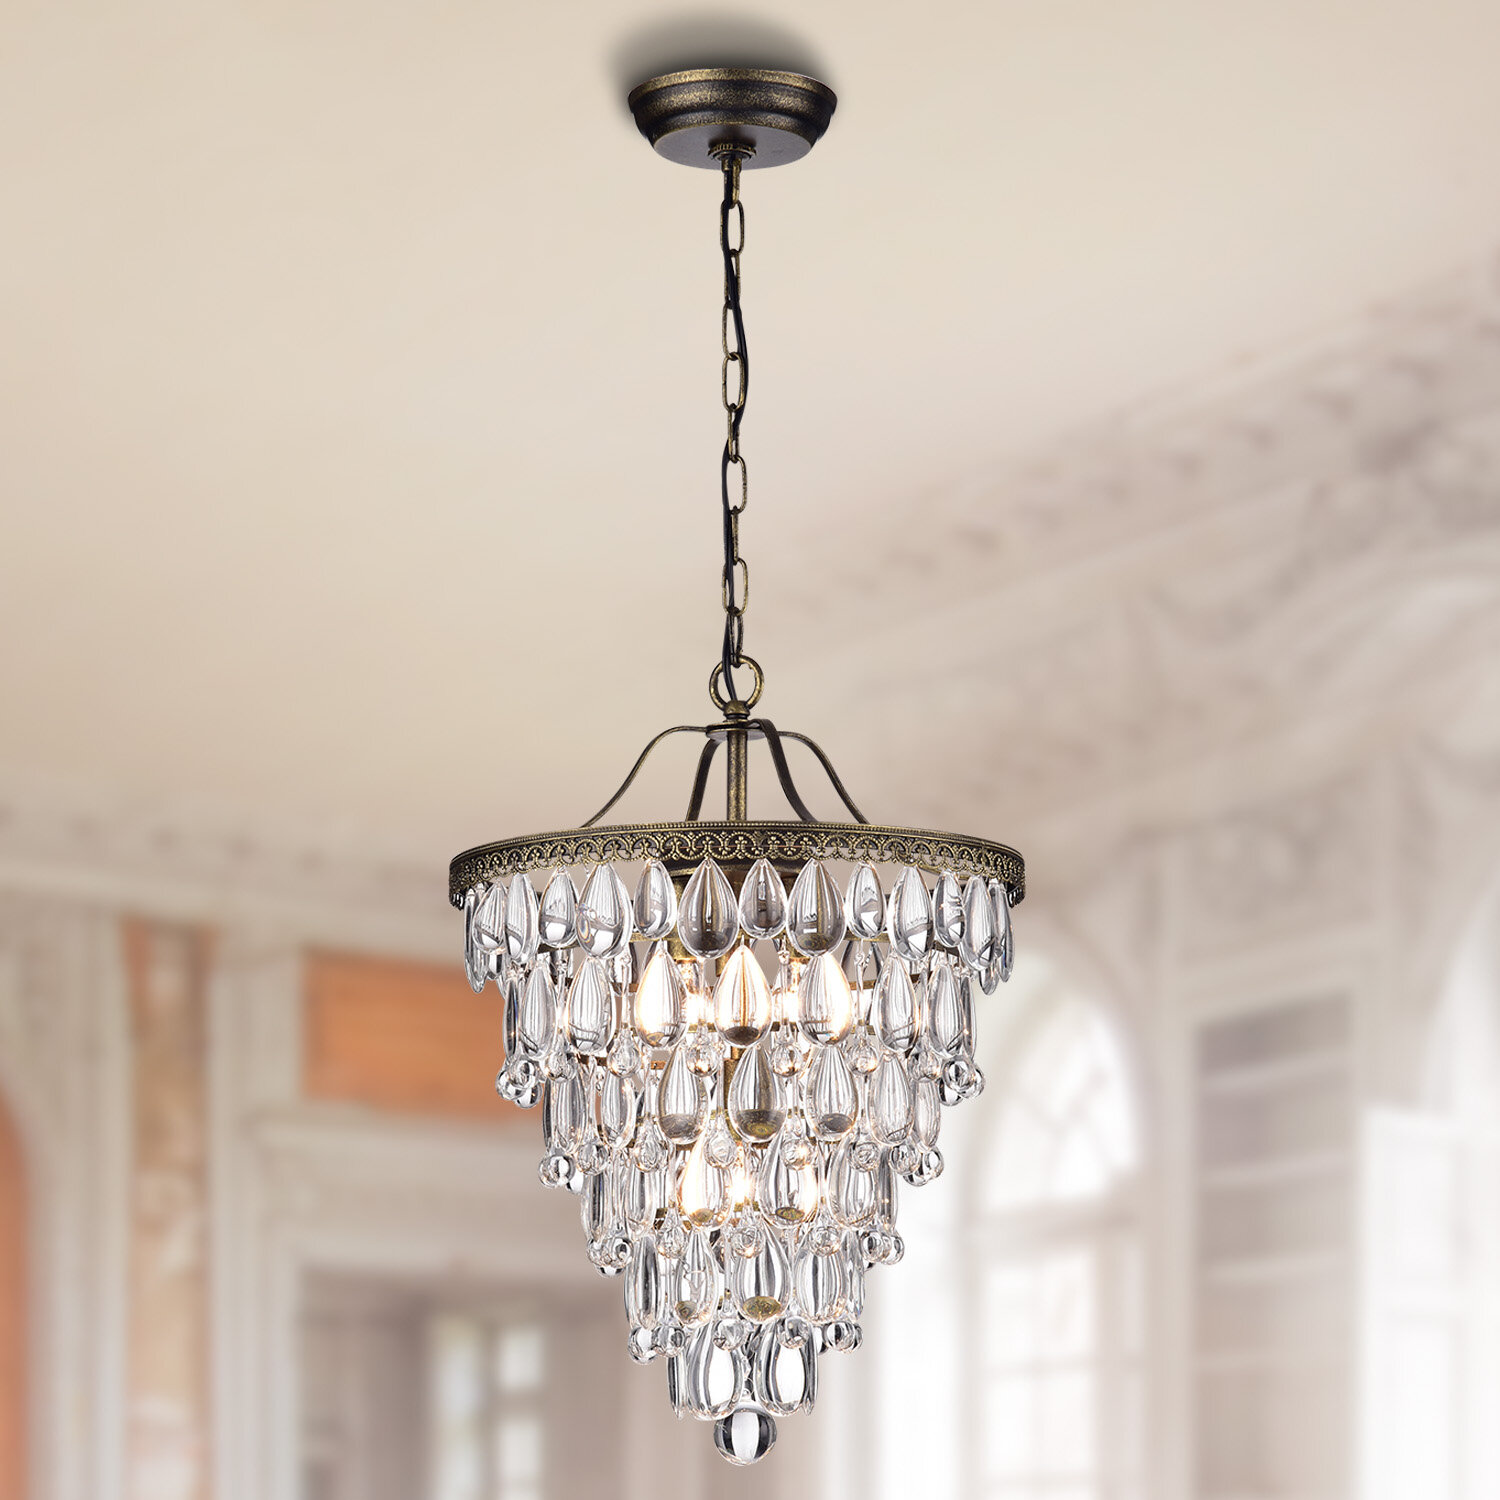 spanish bowl most chandelier antique recycled antiques lighting diy classifieds glass marble bohemian superb modern ori blue ceiling green outdoor for sale beaded style rustic light ant fixture